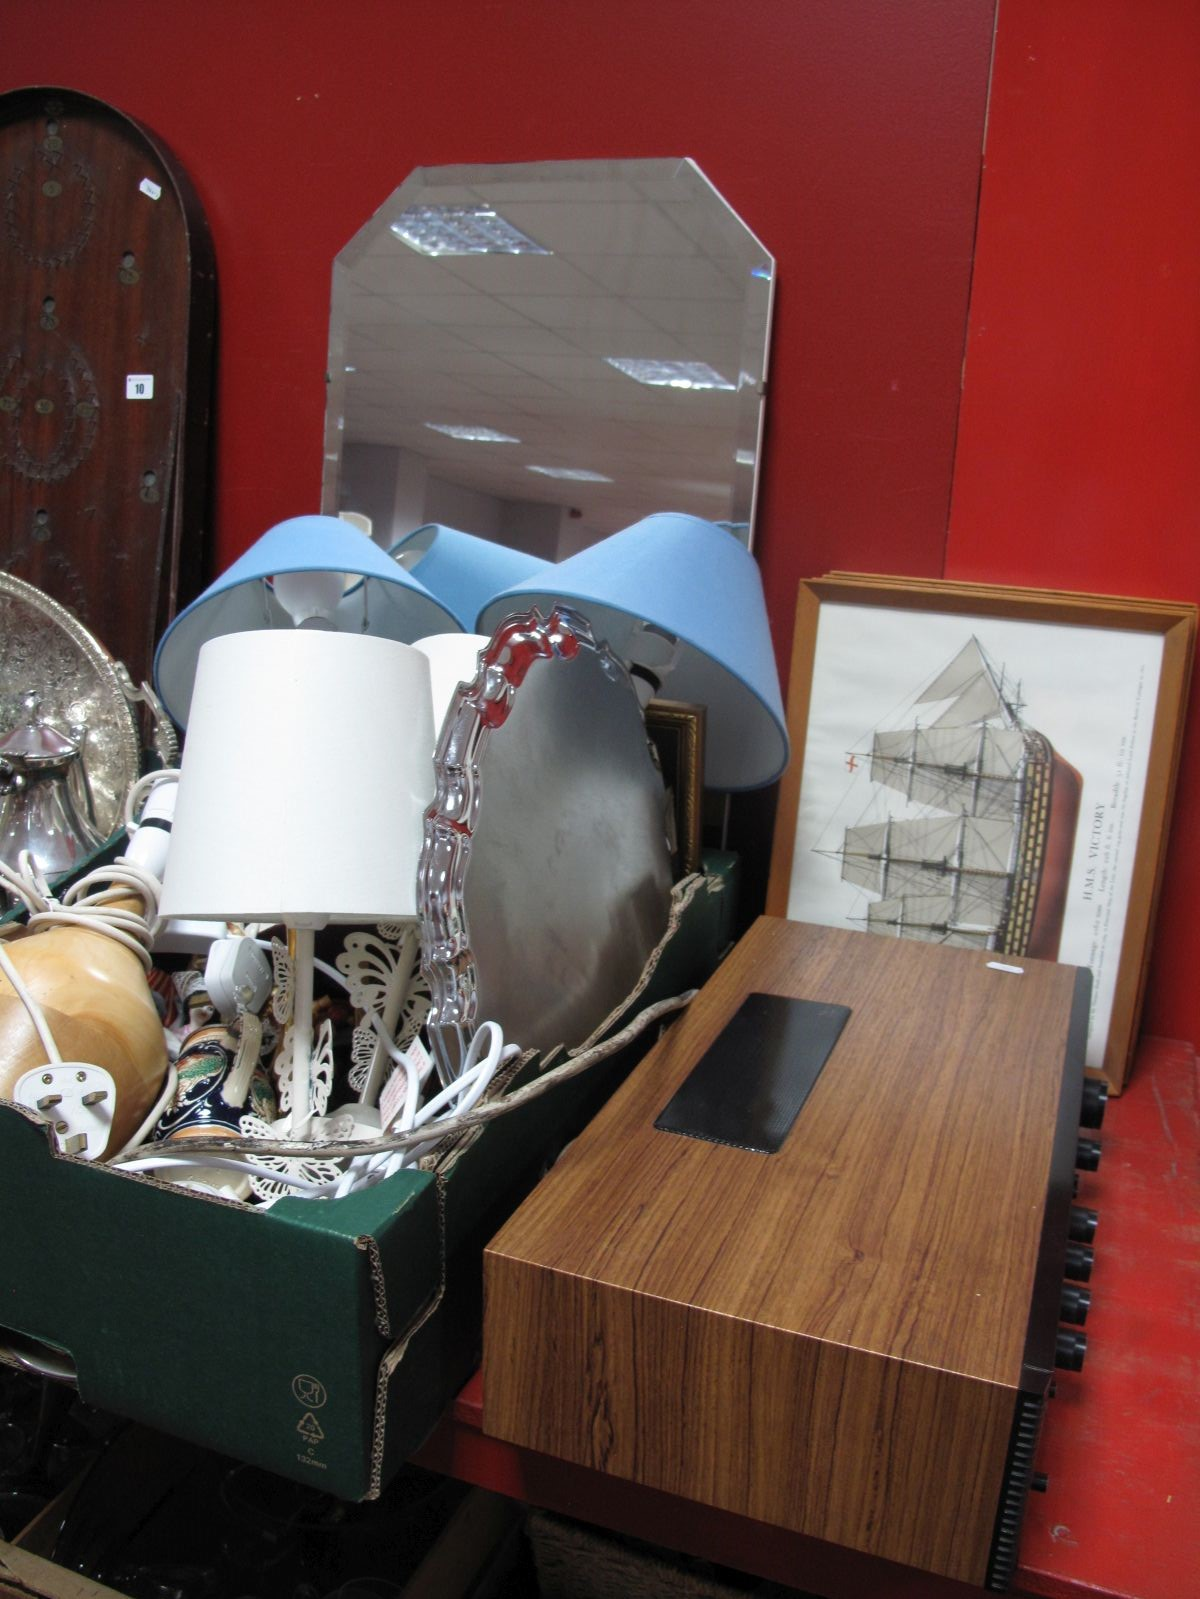 Lot 11 - A Bevelled Wall Mirror, ship themed prints, National costume dolls, table lamps, Cunningham print,